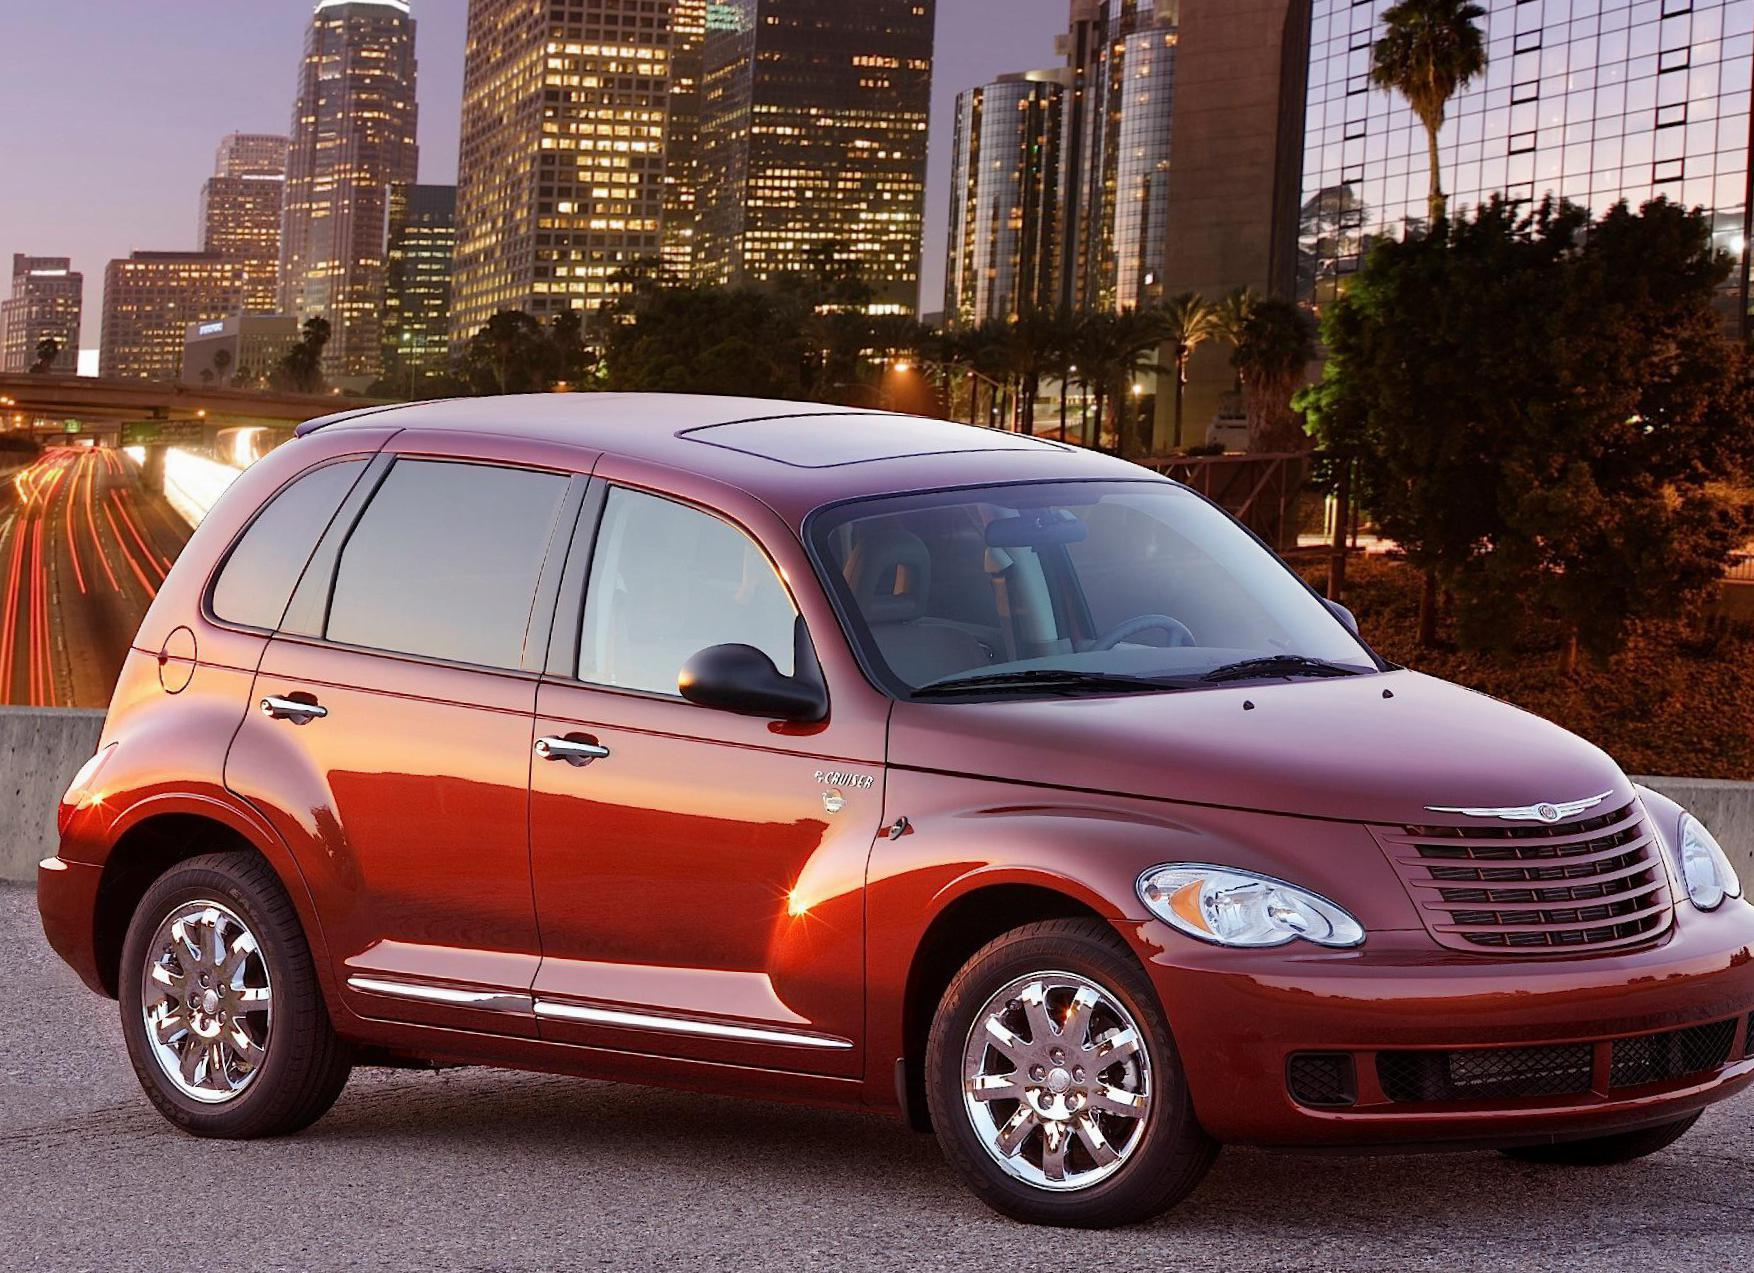 PT Cruiser Chrysler tuning 2008